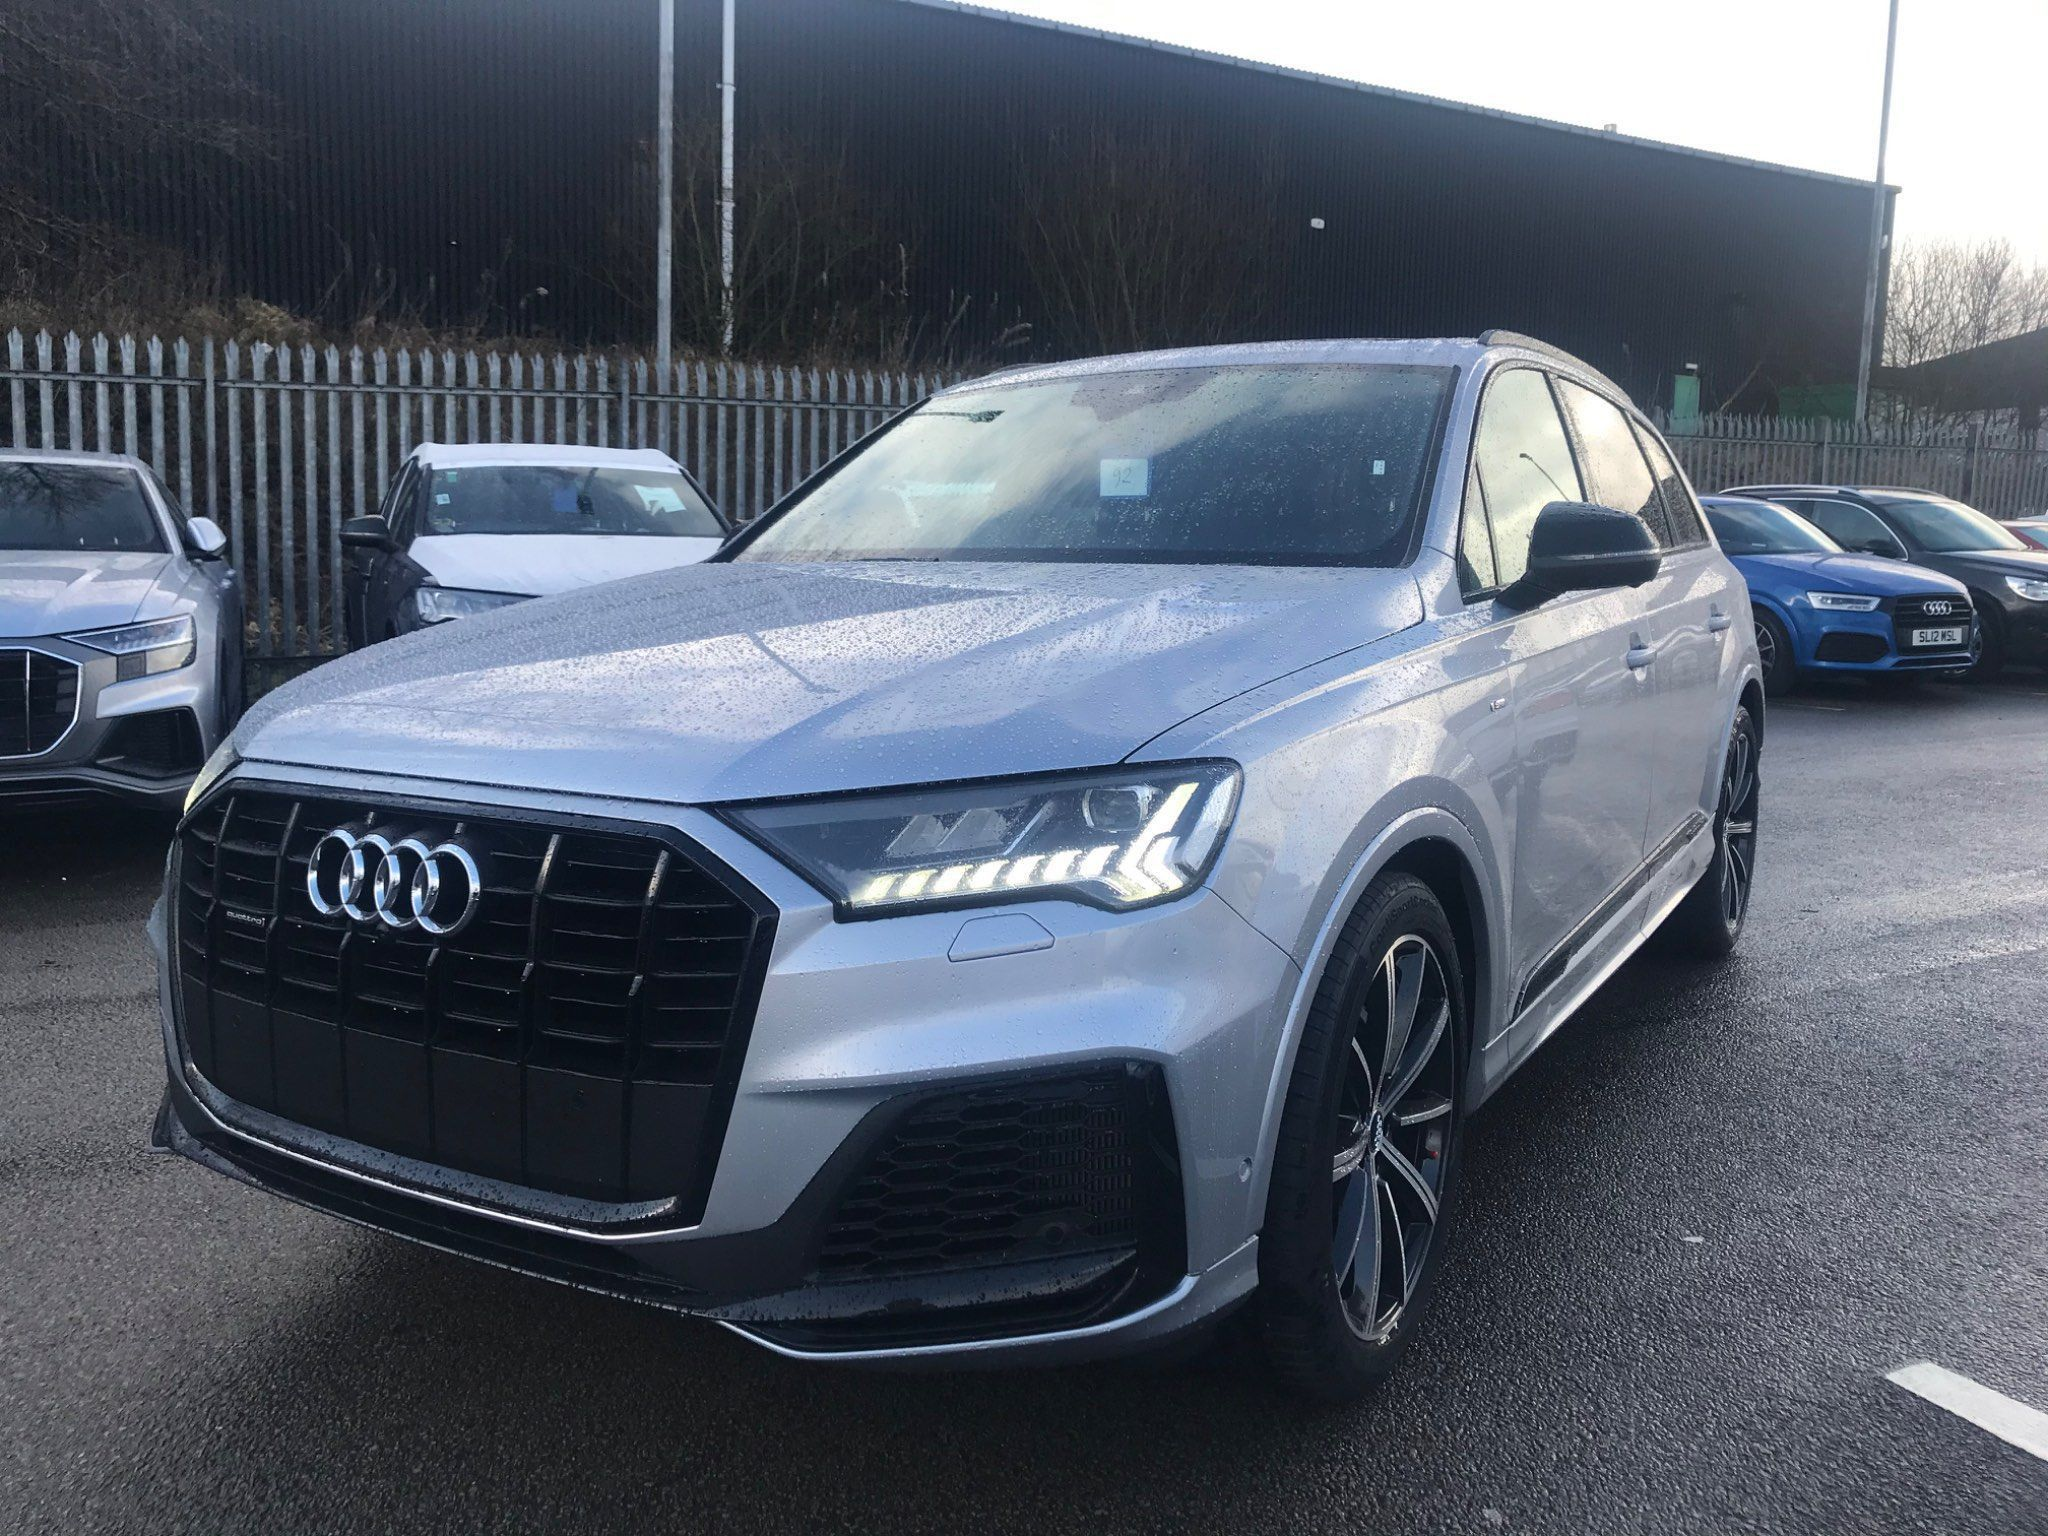 Audi Q7 3 0 Tdi V6 50 Black Edition Tiptronic Quattro S S 5dr In 2020 Audi Q7 Audi Black Edition